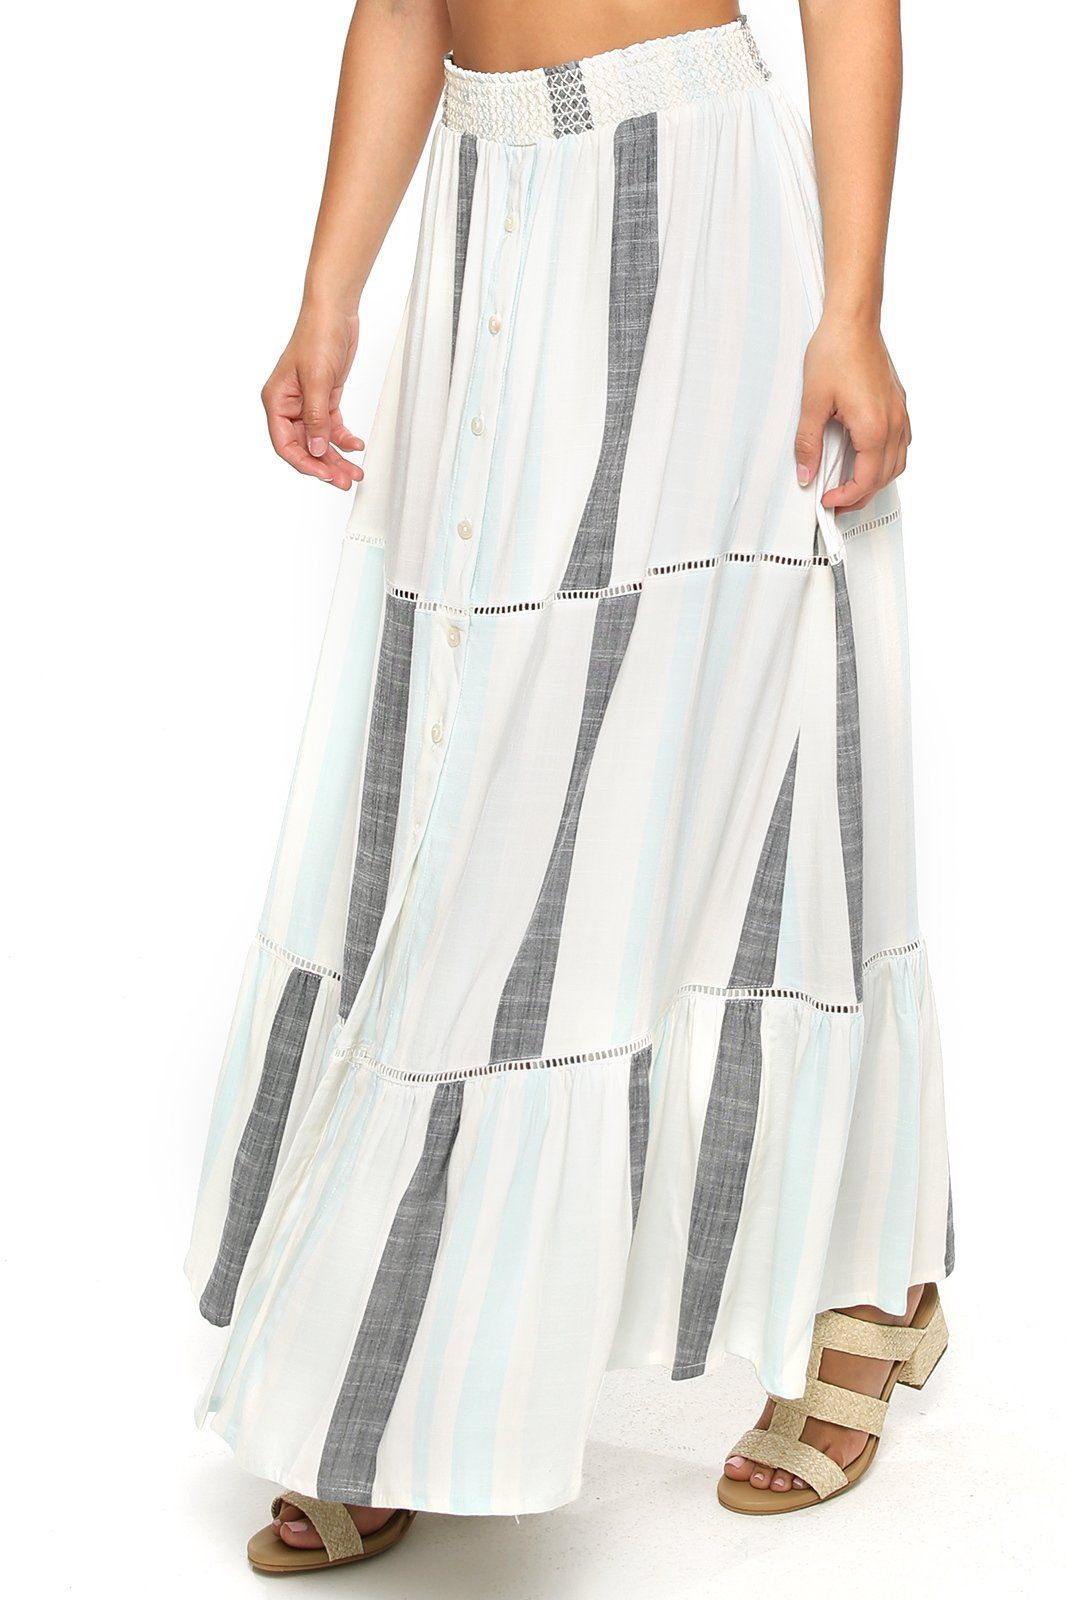 Opal Smocking Maxi Skirt - Hampton Stripe